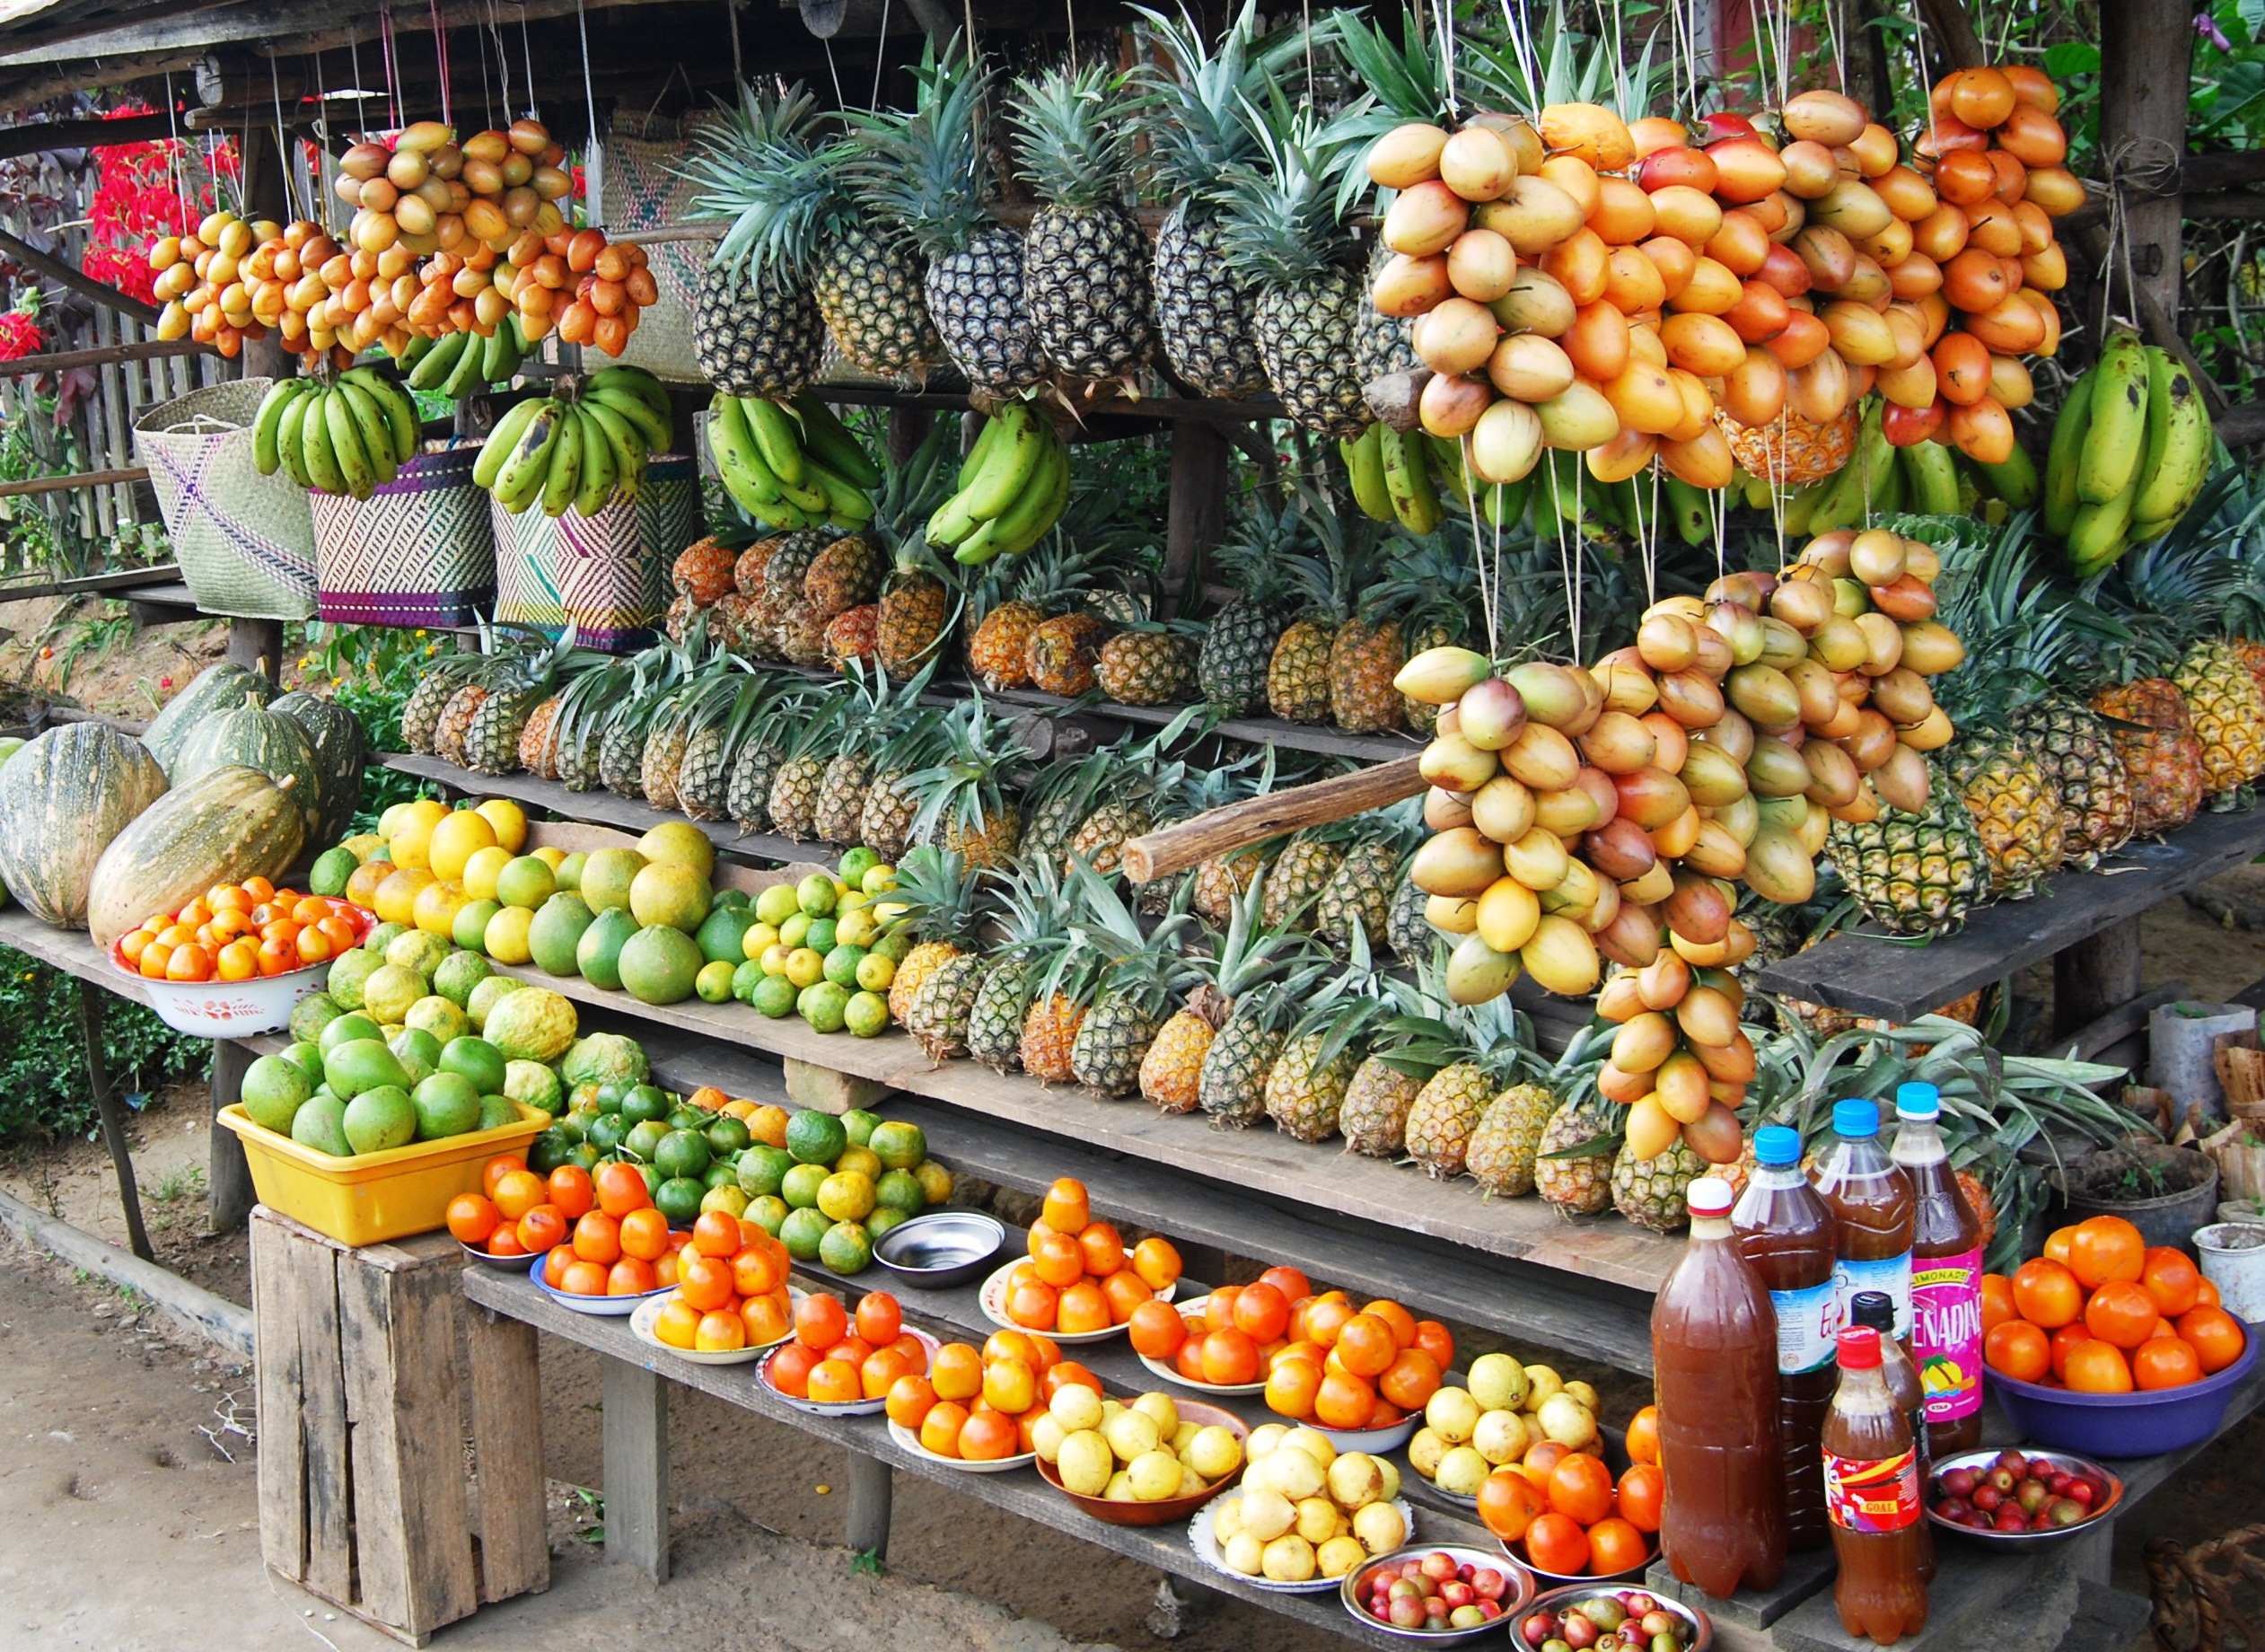 A whirlwind tour of the best shopping market in Antananarivo - Madagascar!